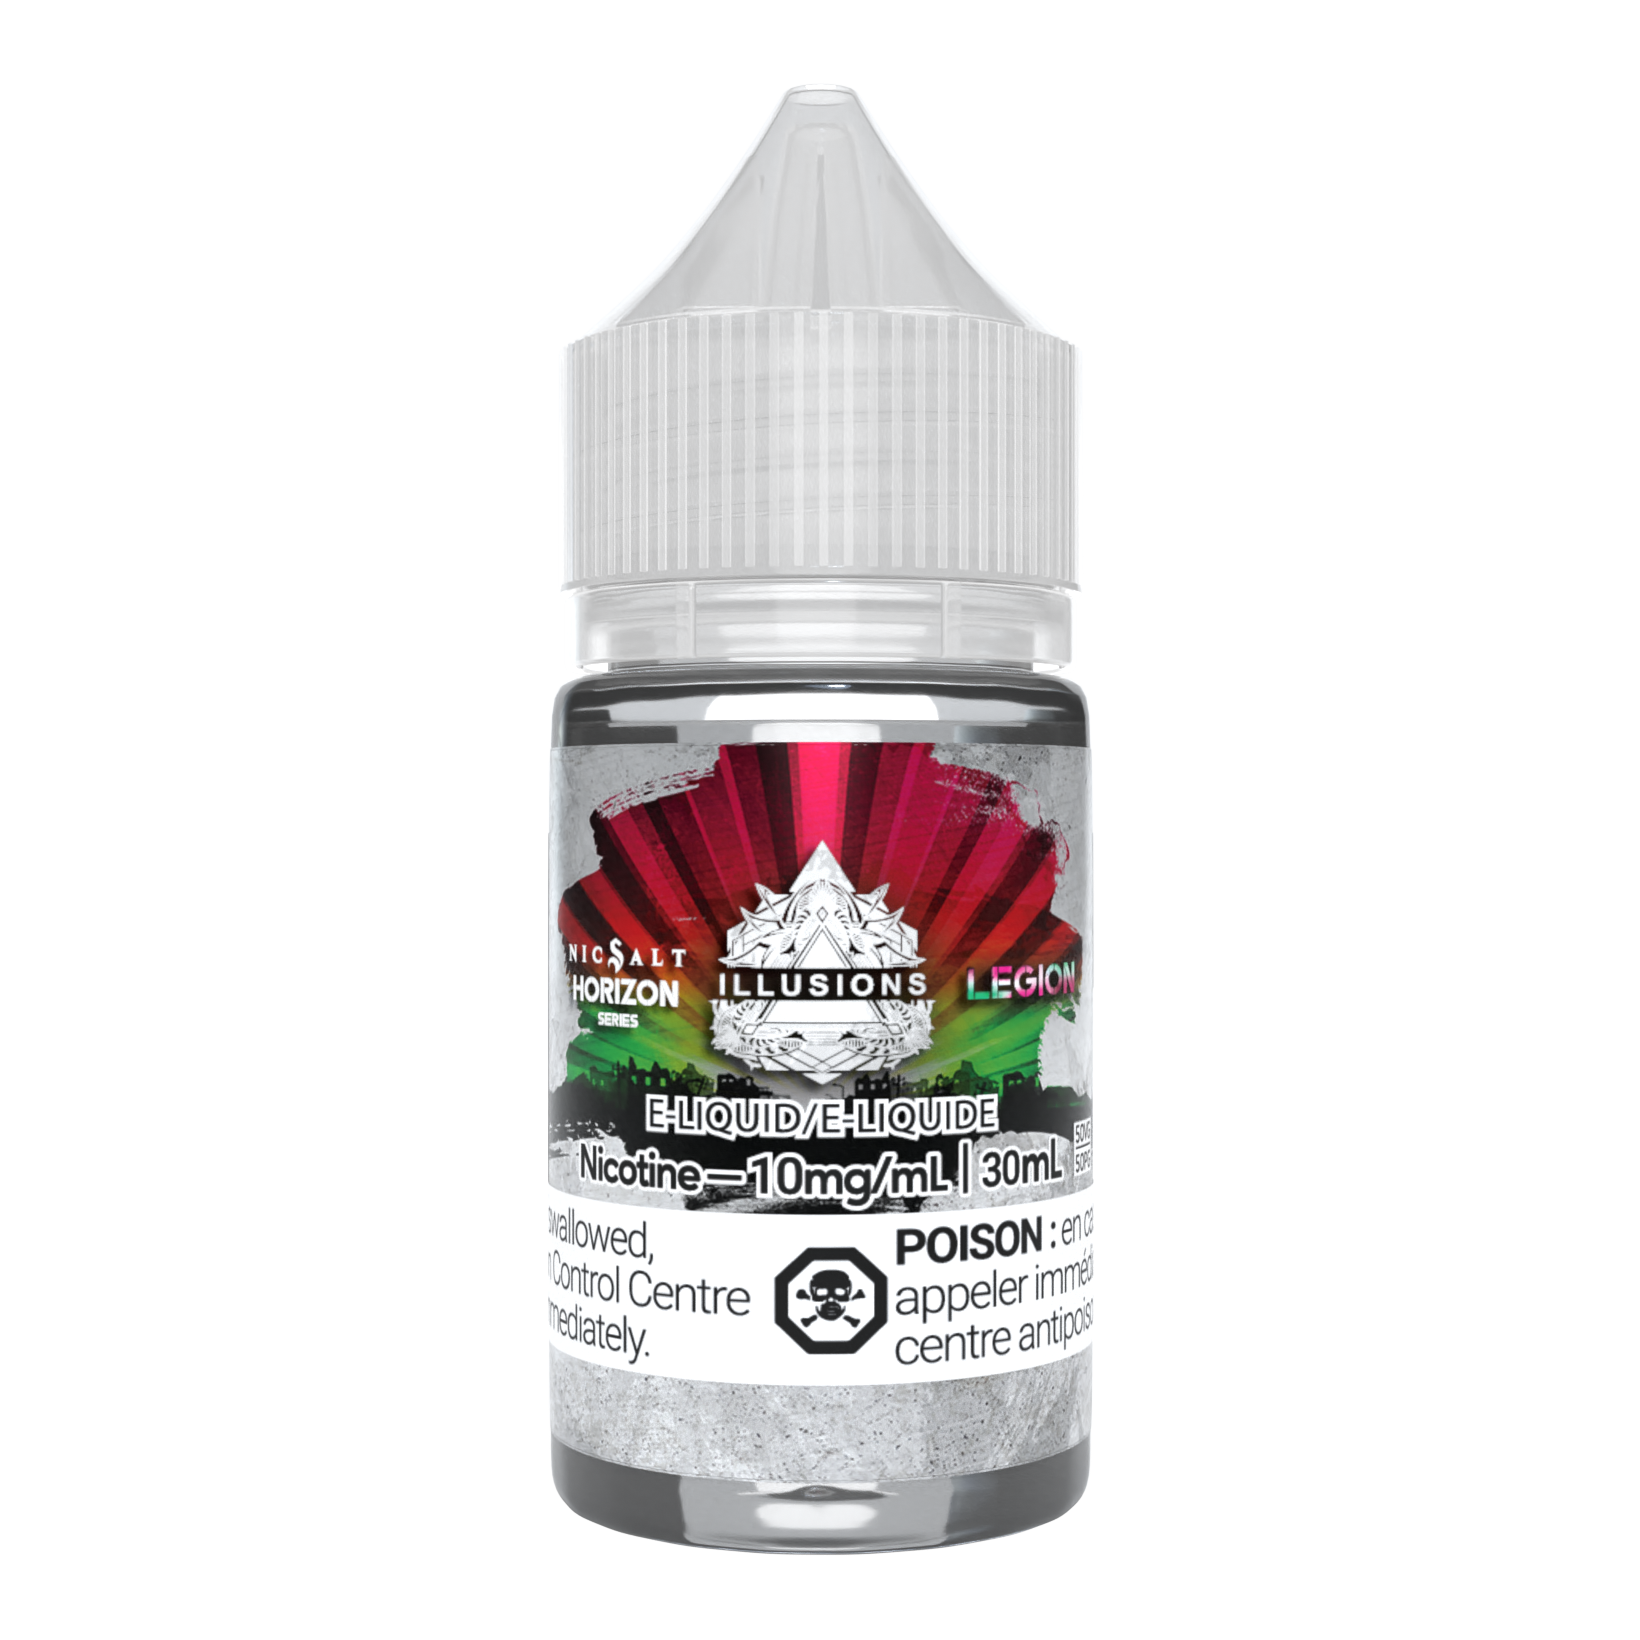 Illusions Horizon Salts: Legion (30mL)